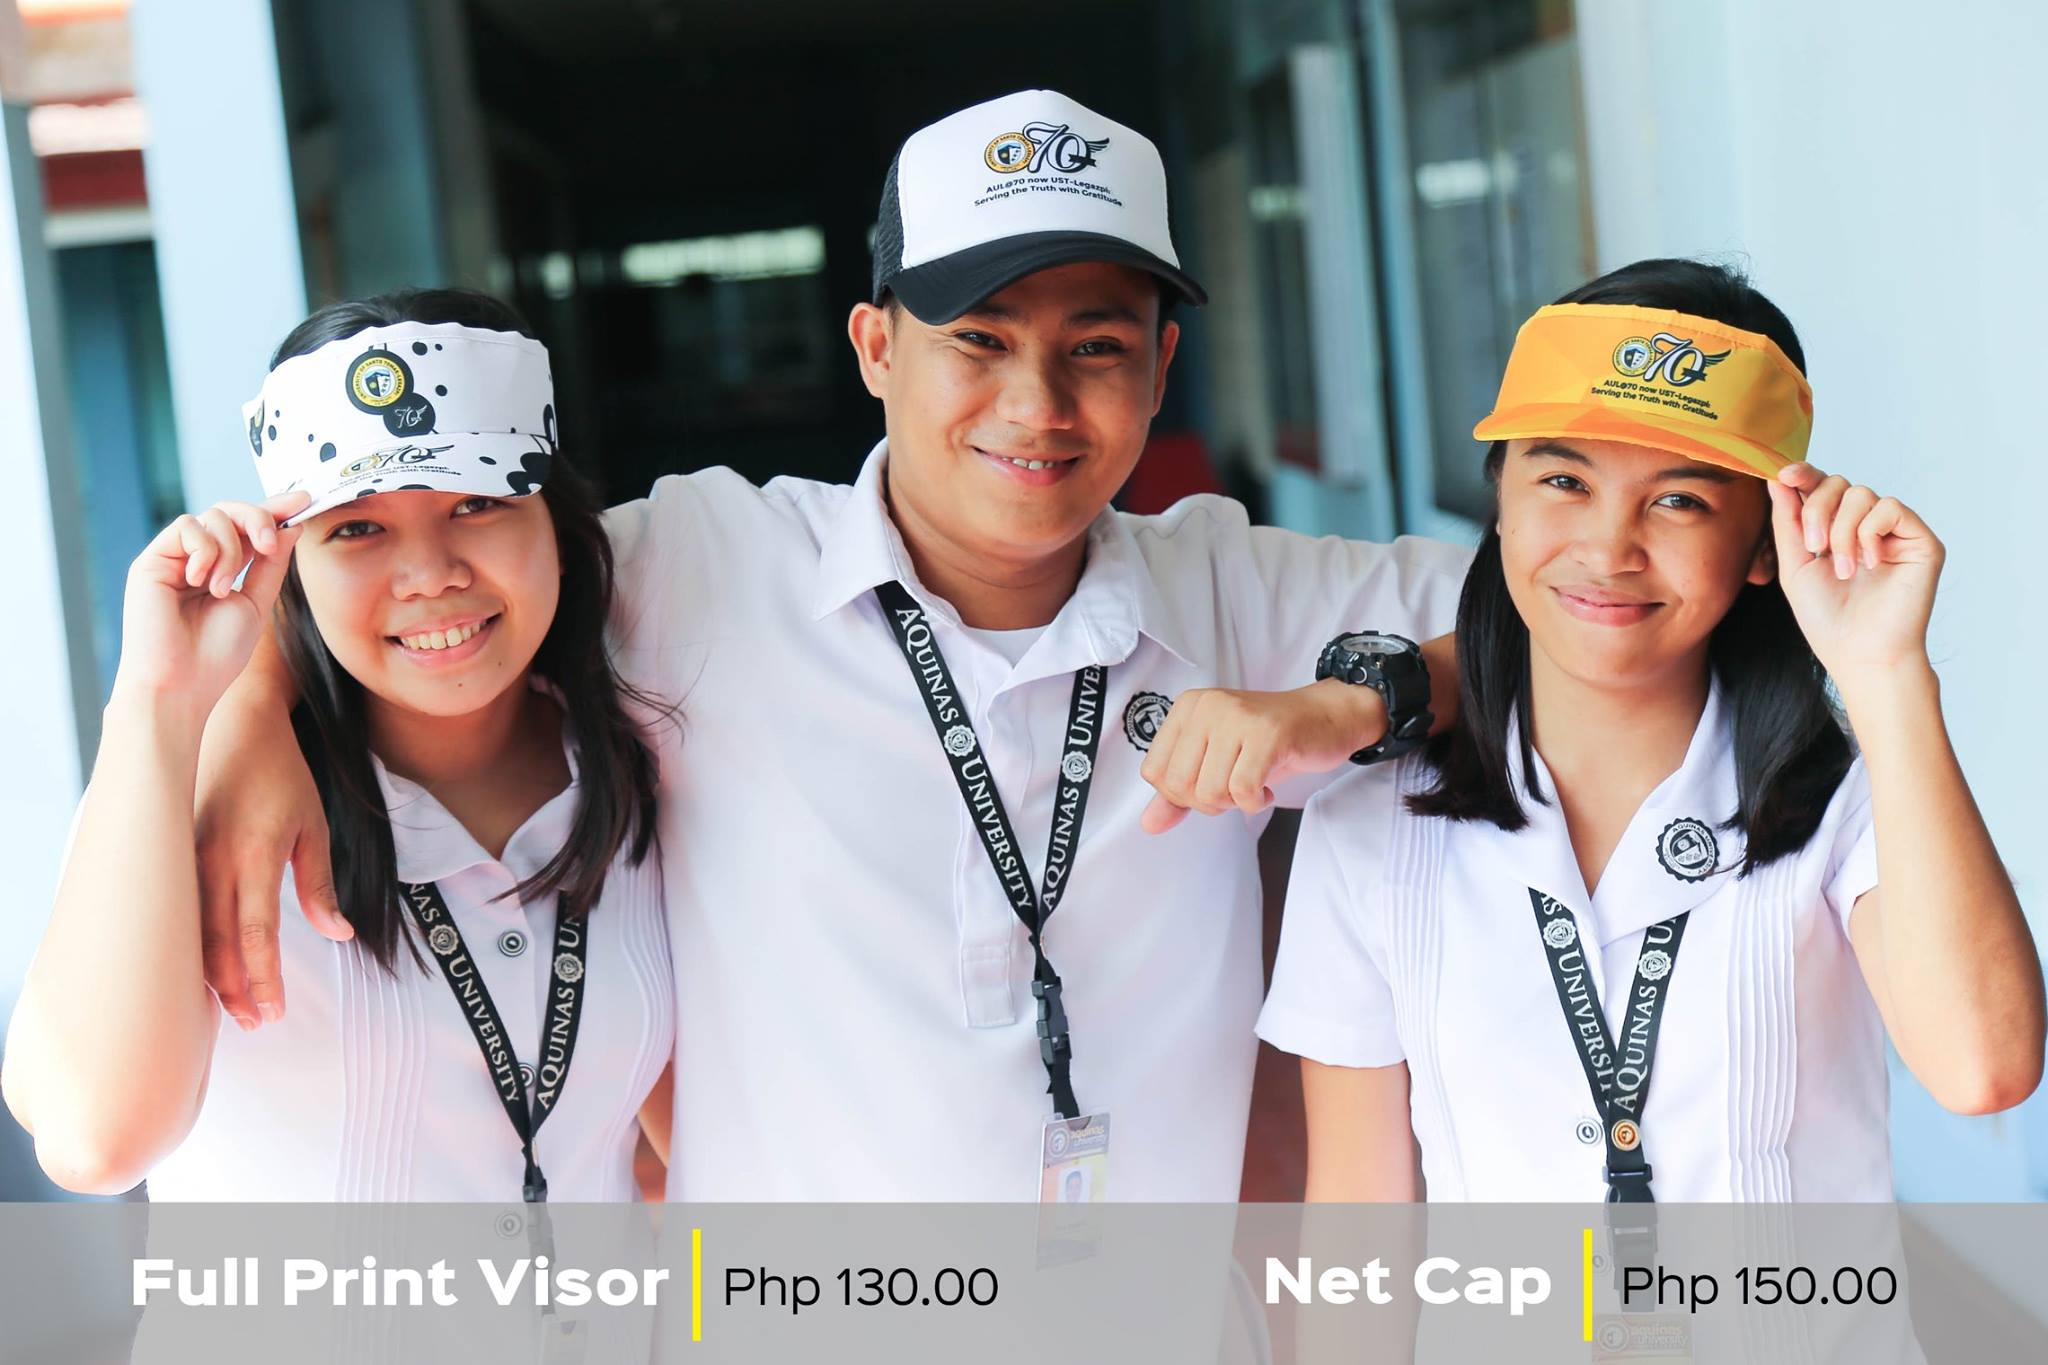 Commemorative Items for the 70th Founding Anniversary